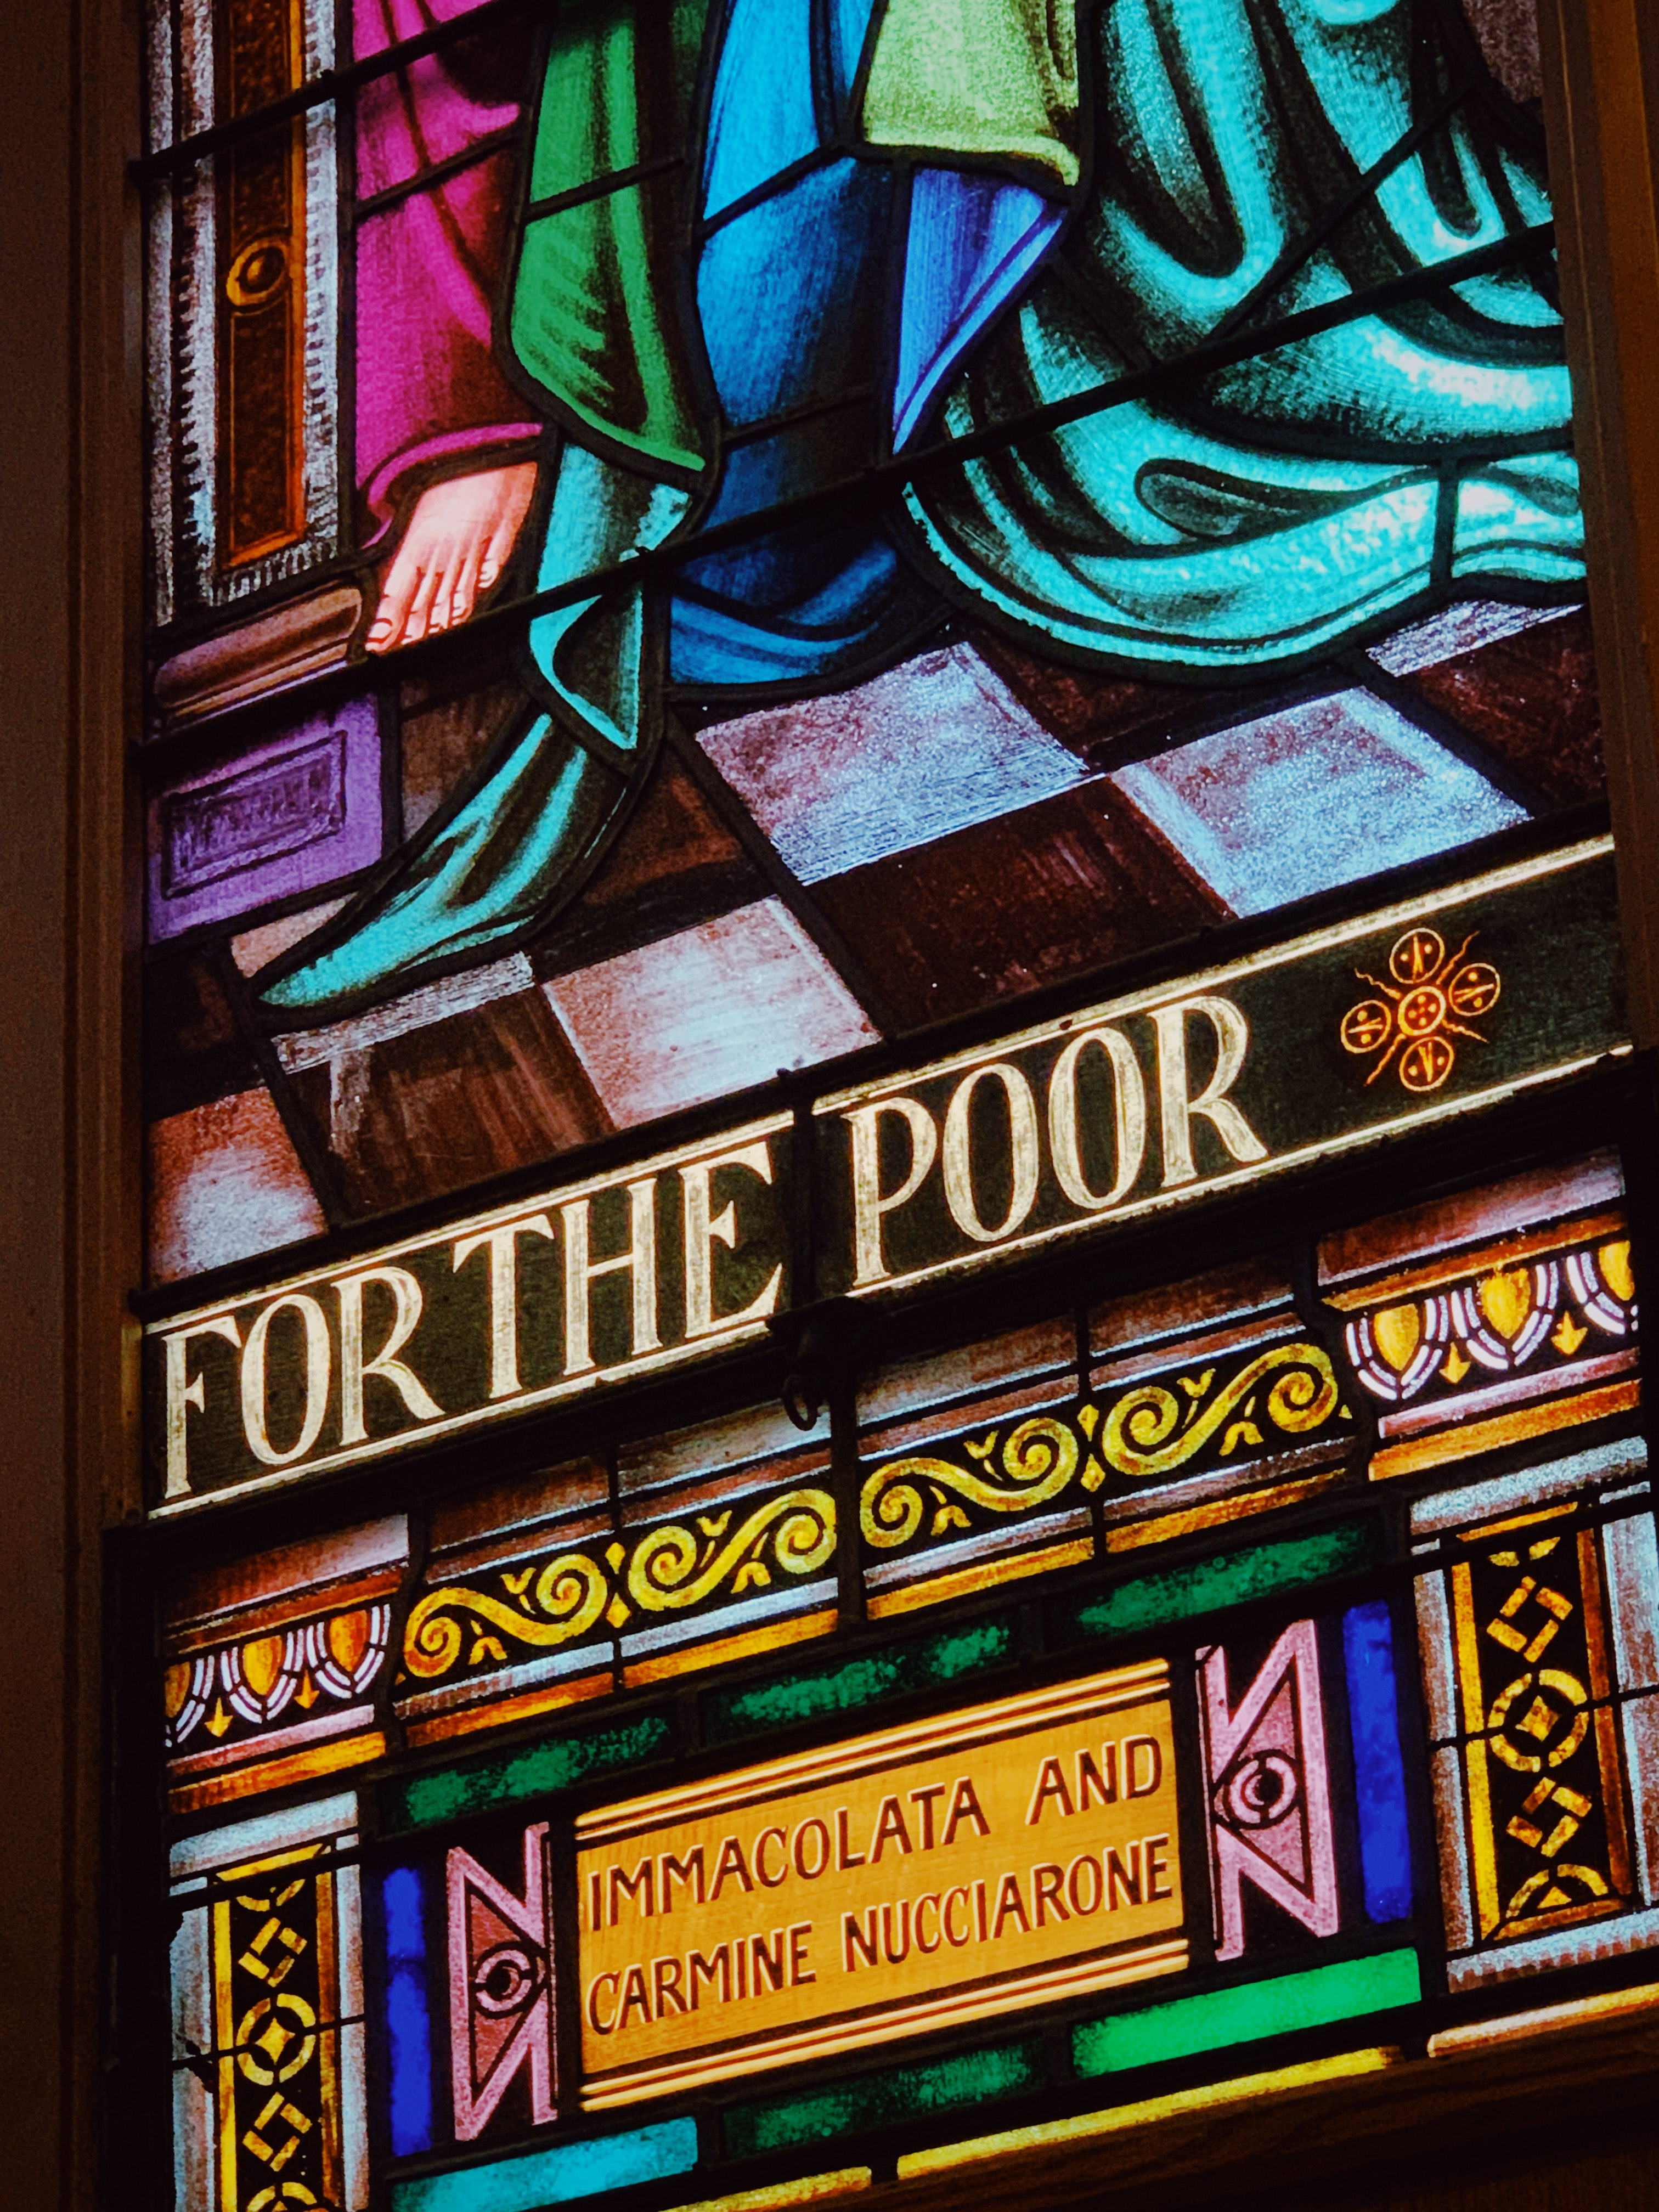 For the Poor Immacolata and Carmine Nucciarone painting